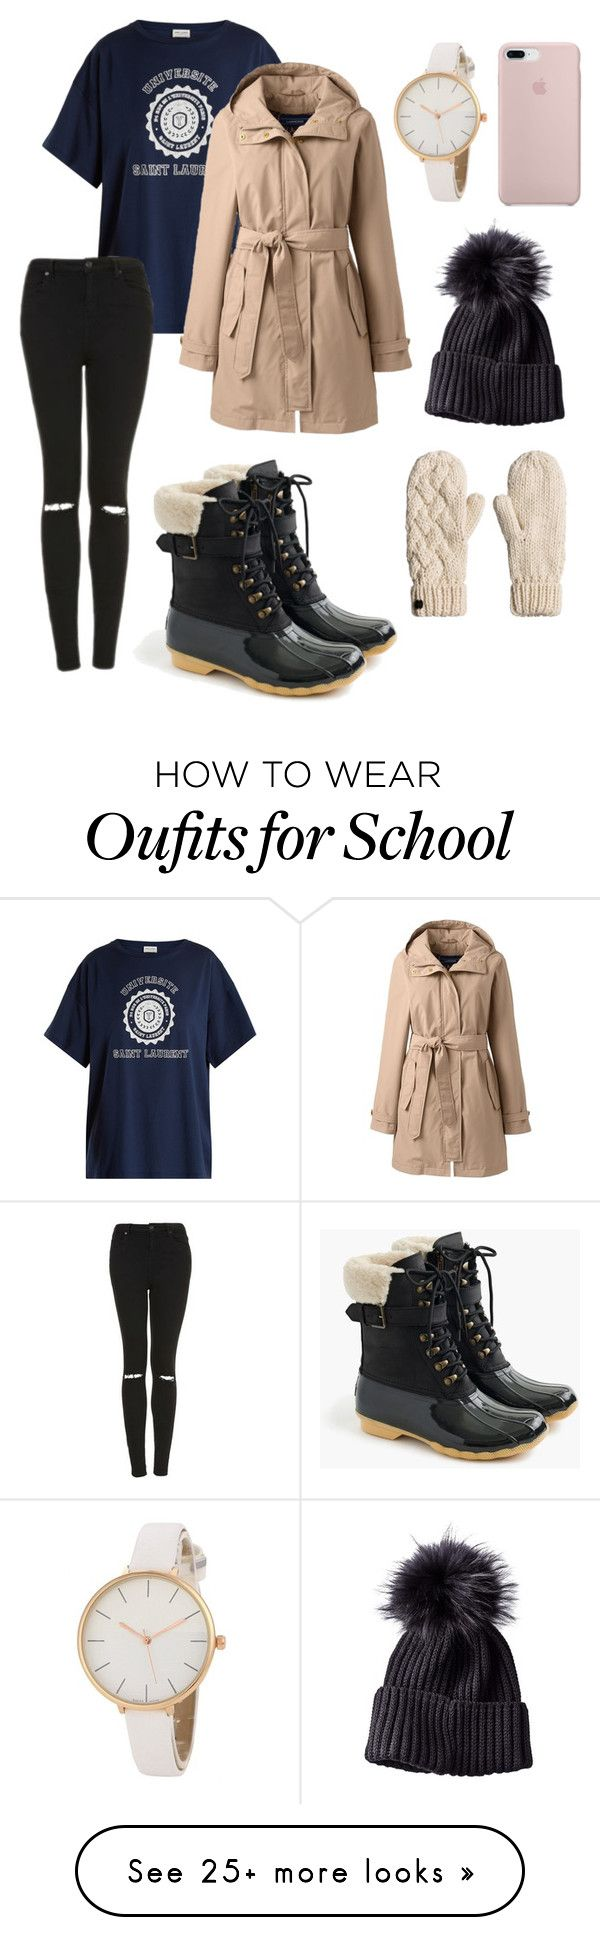 """No school tomorrow ❄️"" by anna-beth224 on Polyvore featuring Yves Saint Laurent, Lands' End, Topshop, Sperry and plus size clothing"